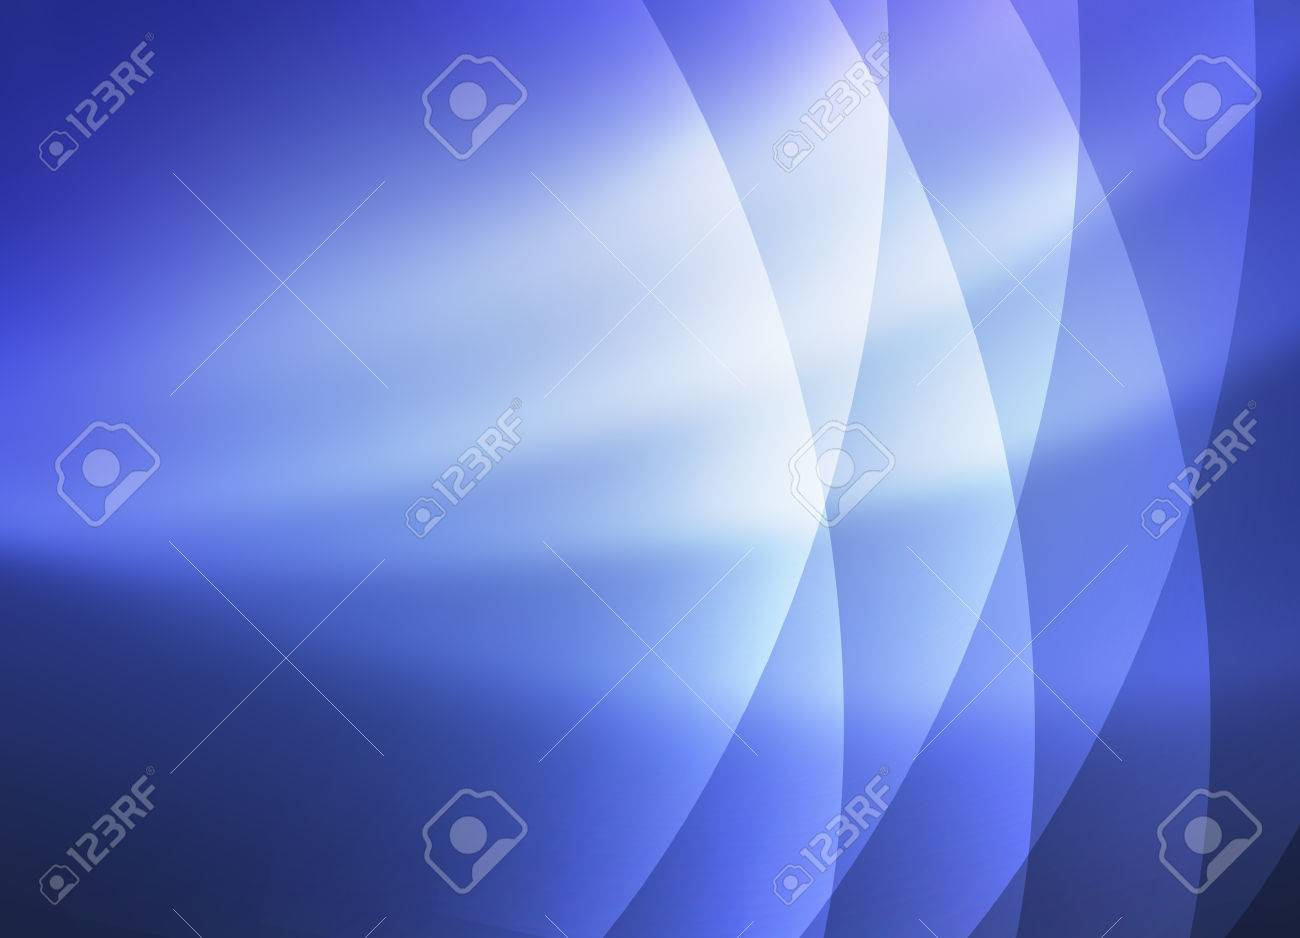 Blue Background With Fancy Criss Cross White Line Design Elements Soft Lighting And Dark Shadows